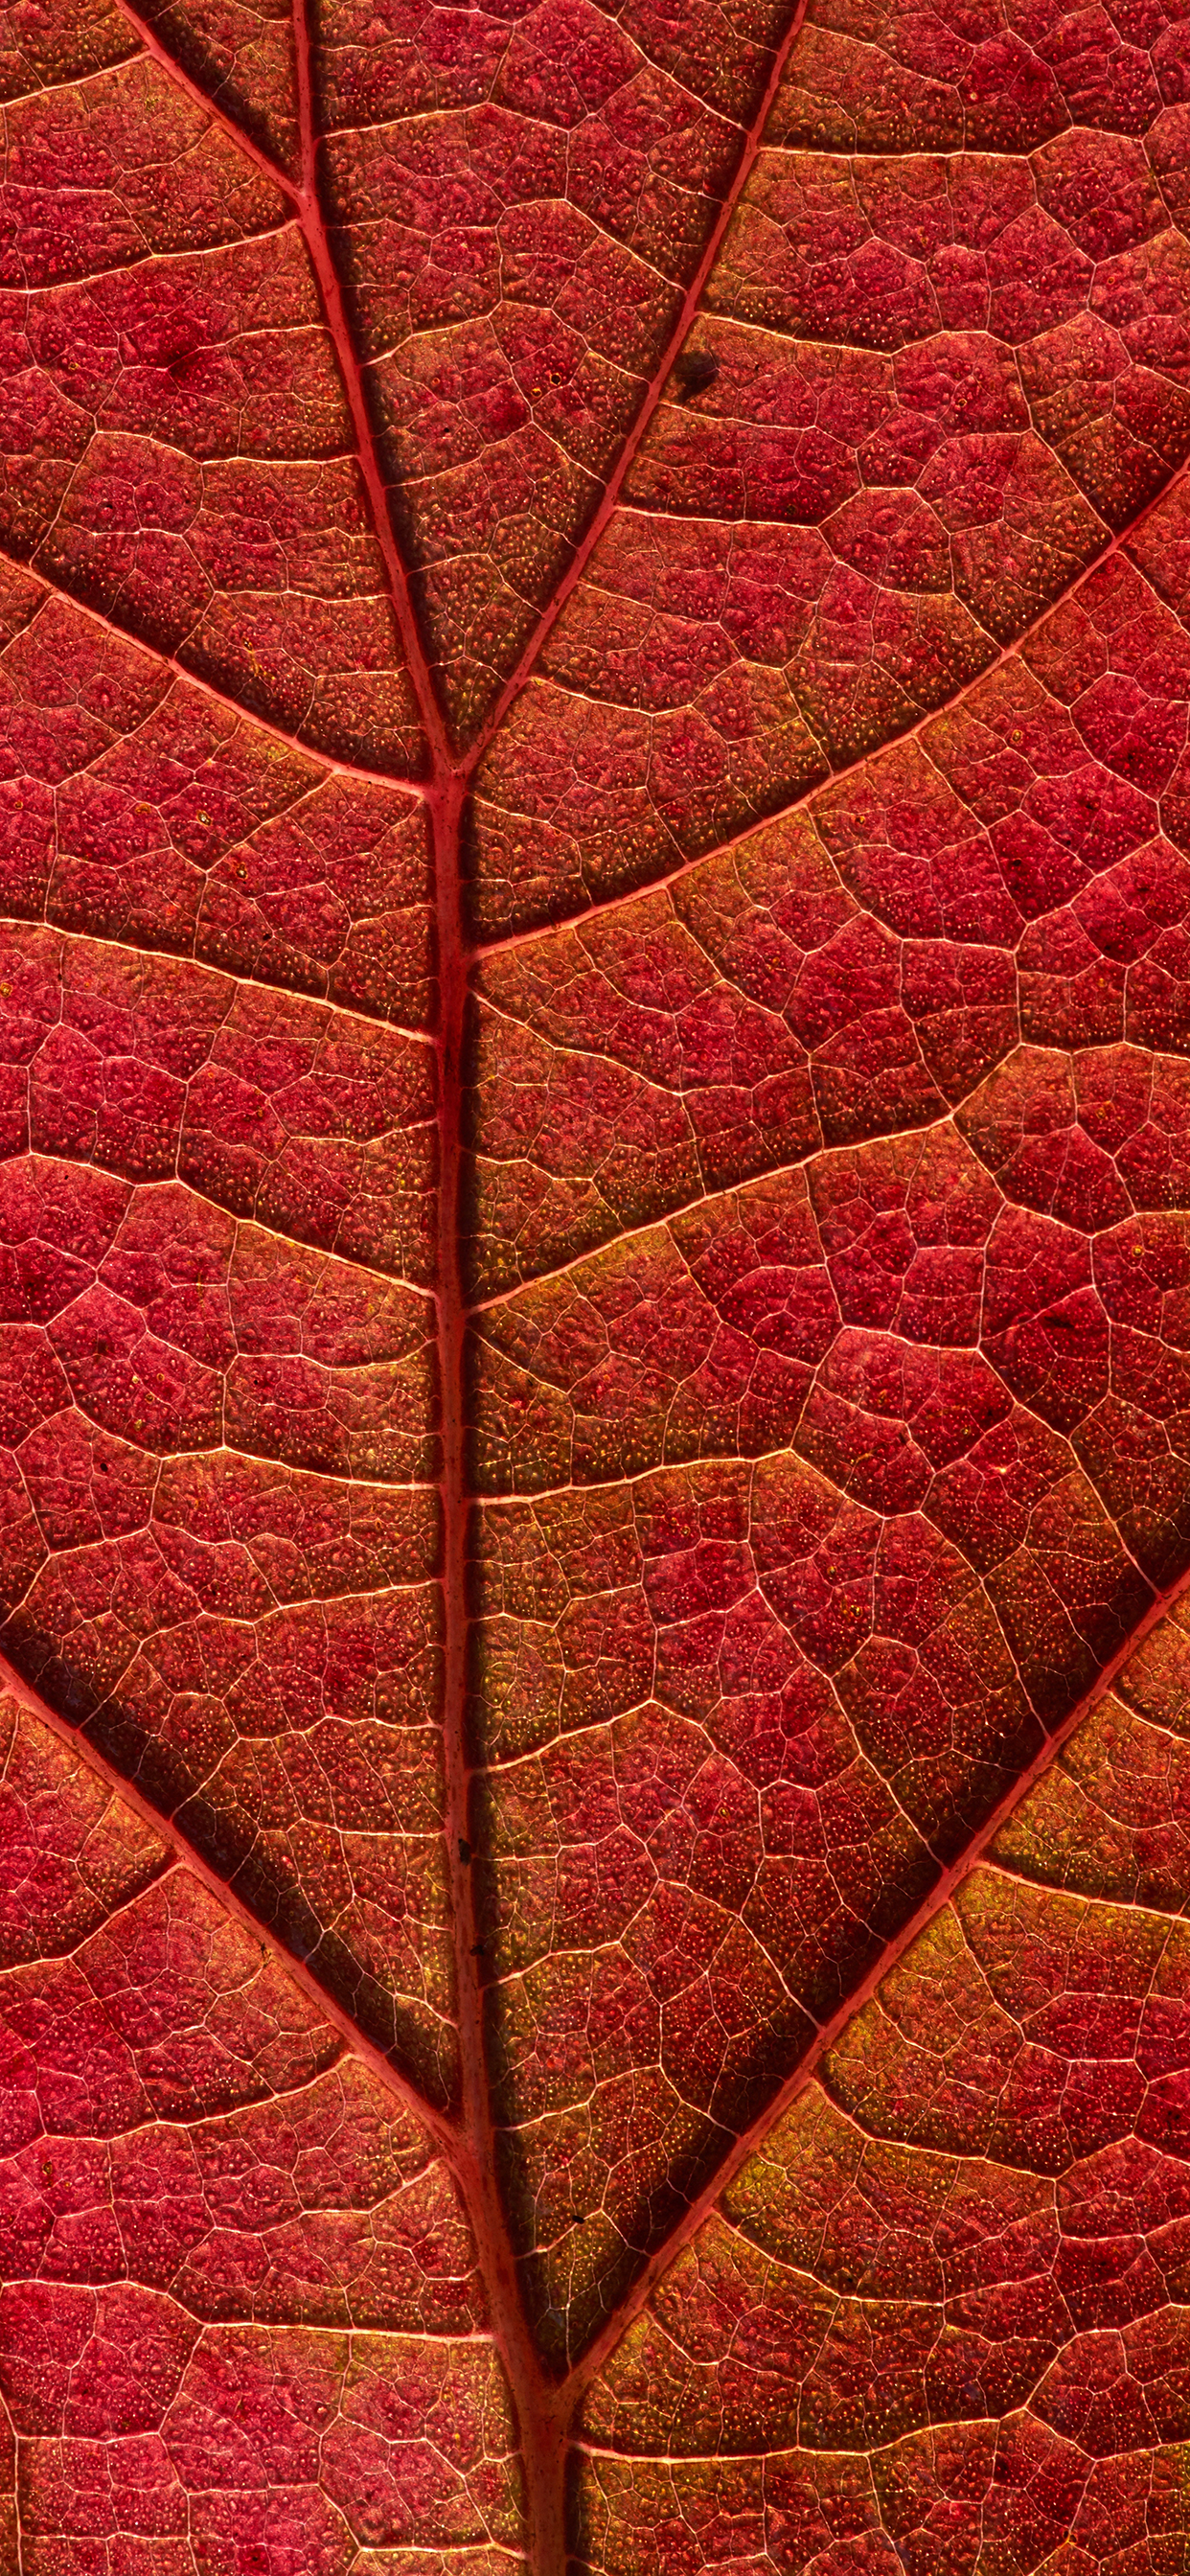 iPhone wallpaper textures leaf red Fonds d'écran iPhone du 19/12/2018